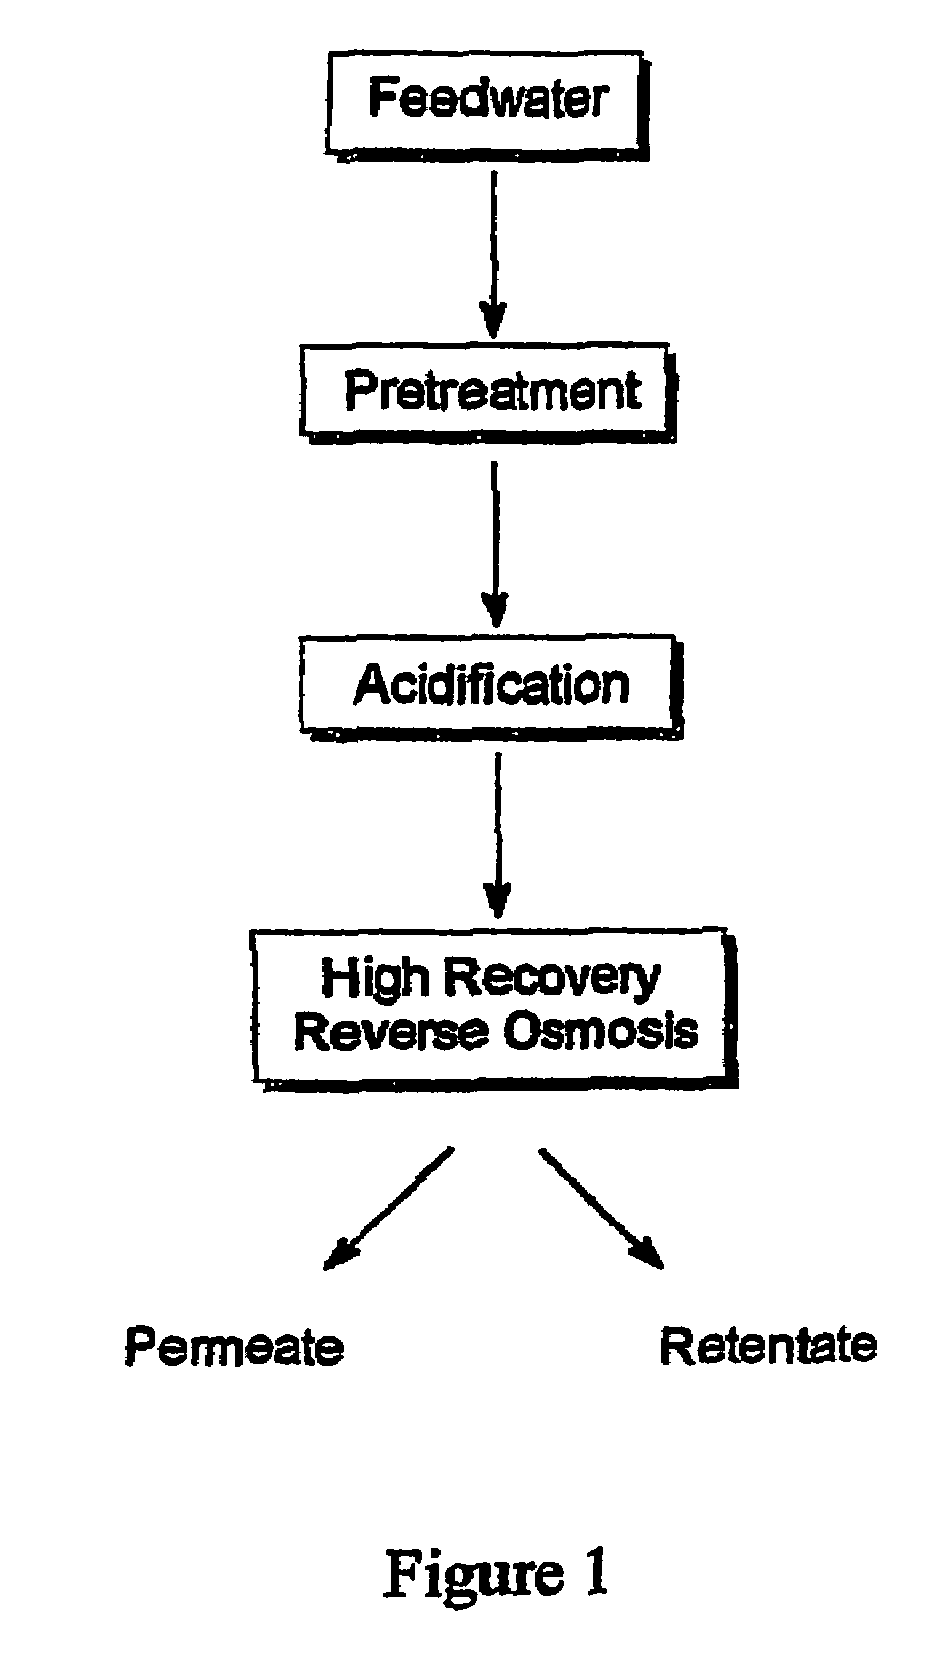 the osmosis process Reverse osmosis process is widely used to remove salts from seawater or  membrane processes – vol iii - reverse osmosis process and system design.